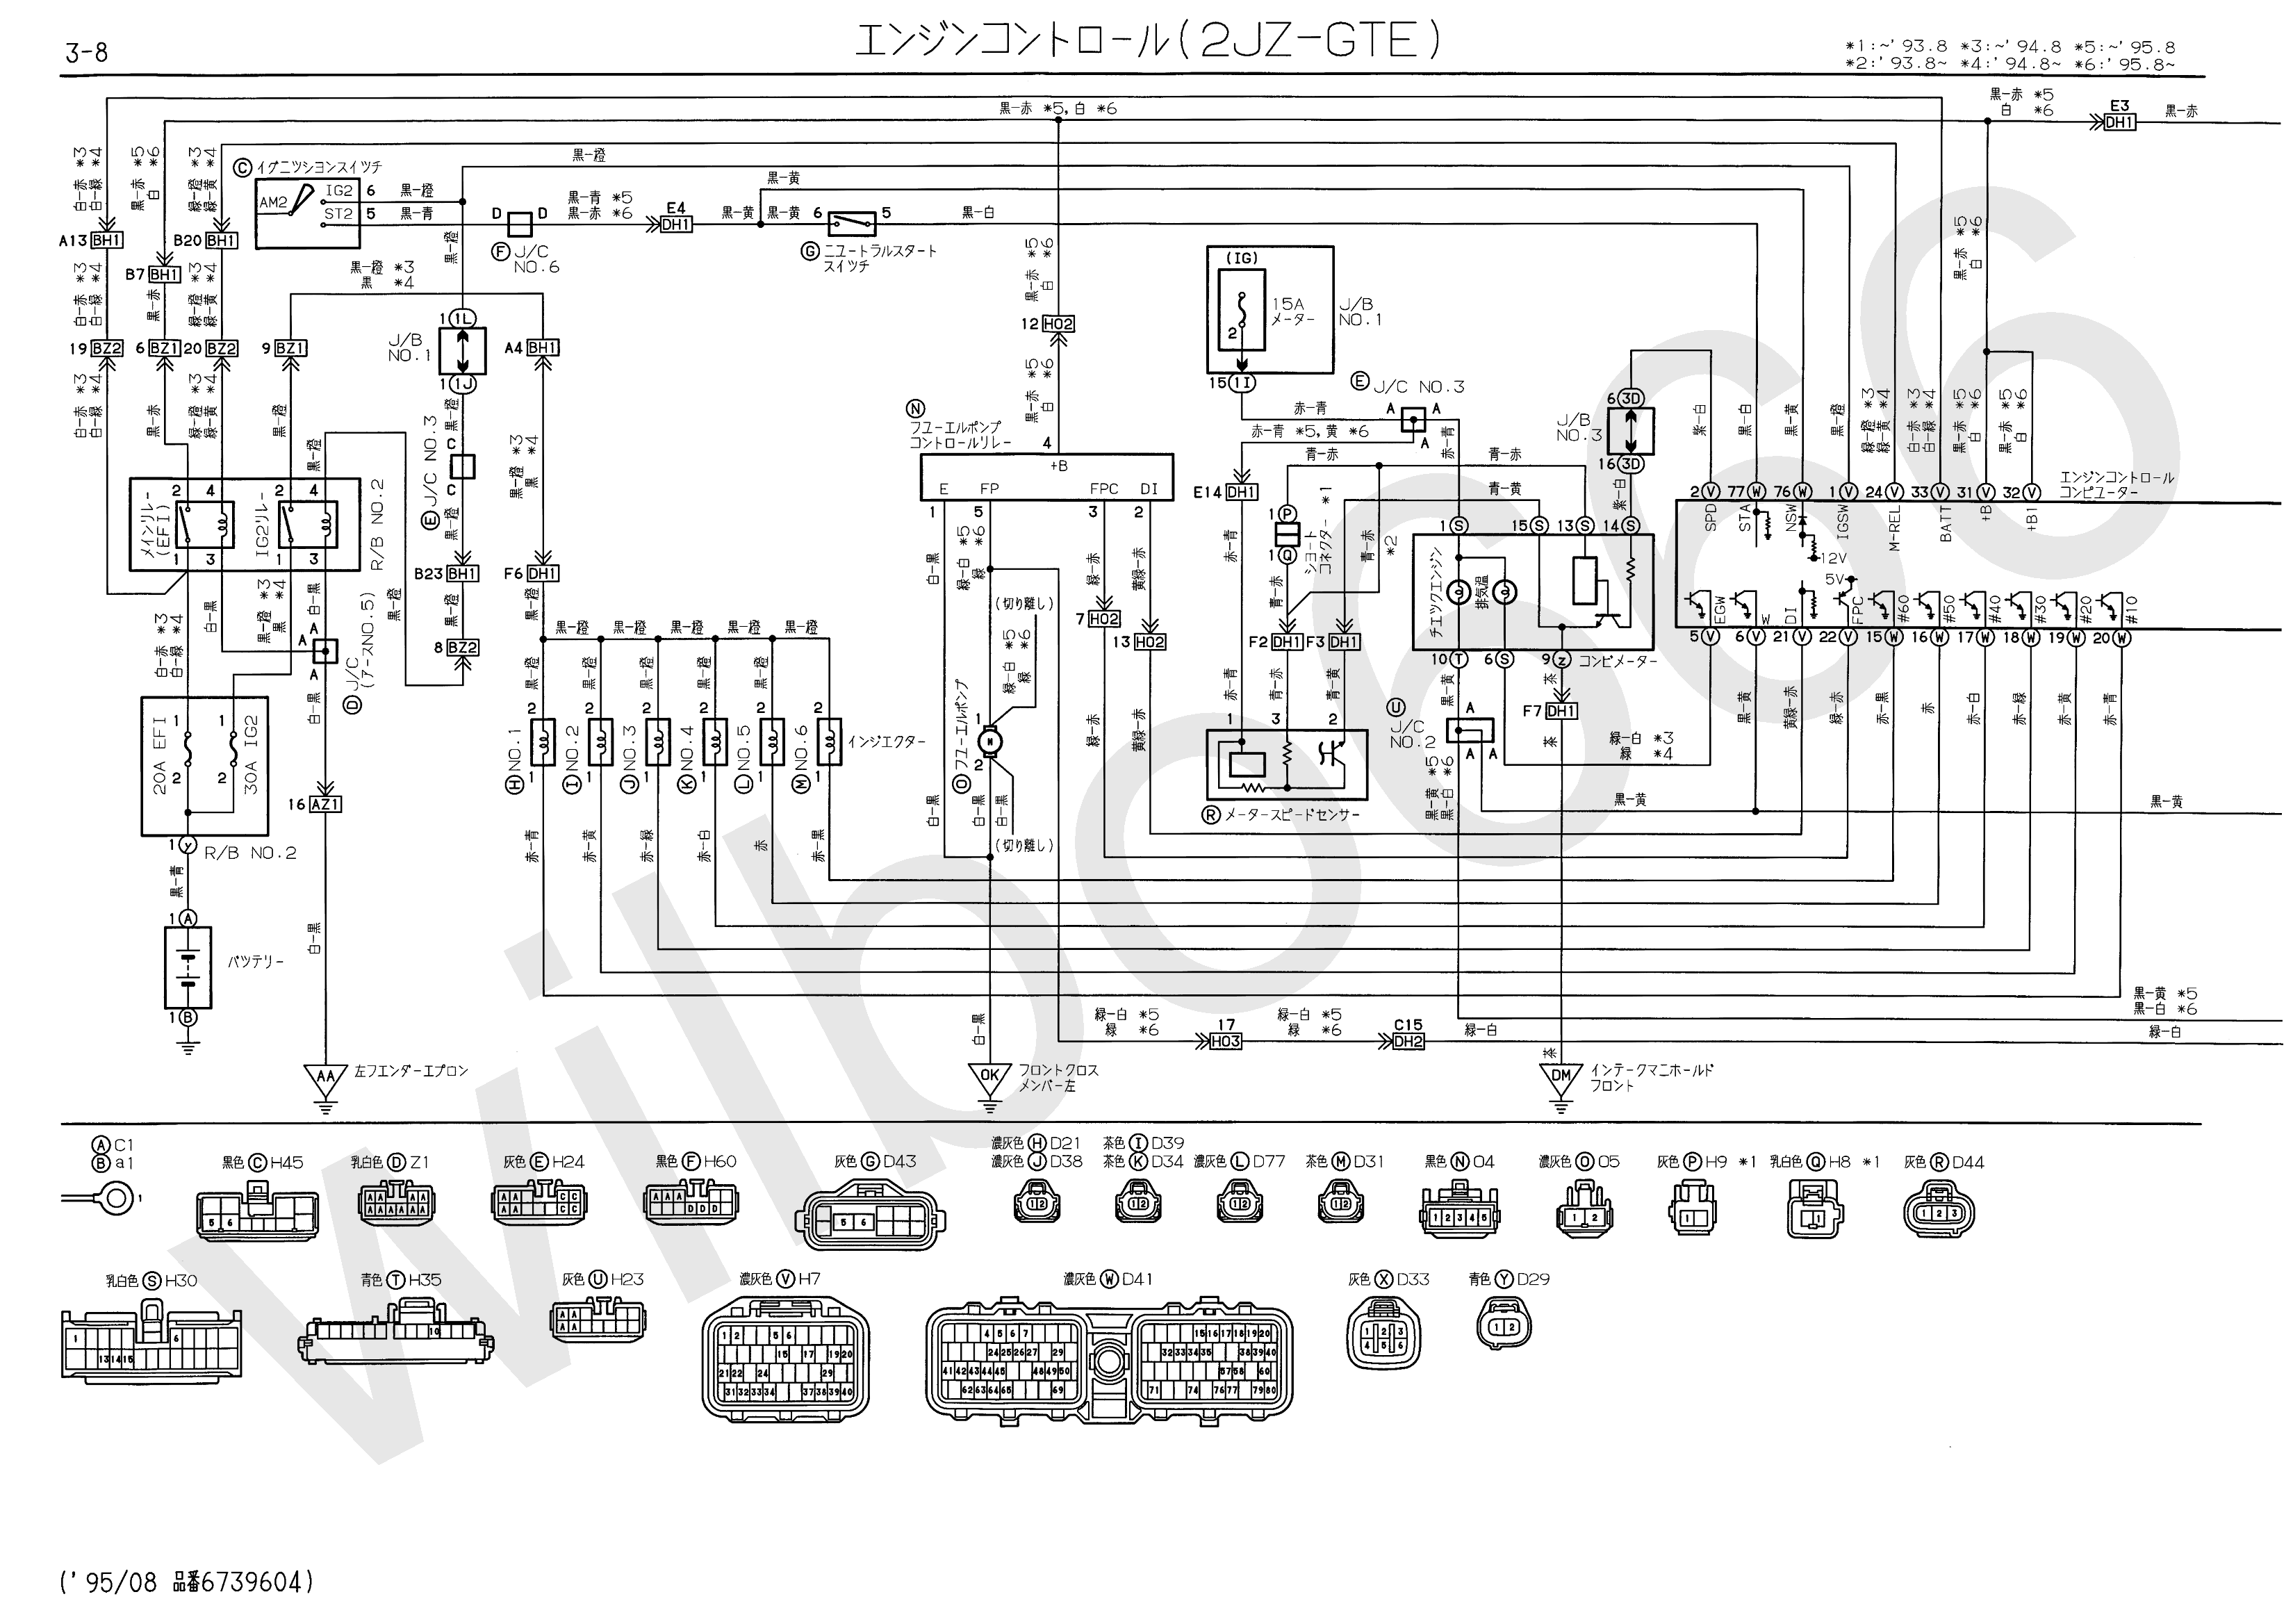 2002 Vw Jetta Stereo Wiring Diagram from wilbo666.pbworks.com